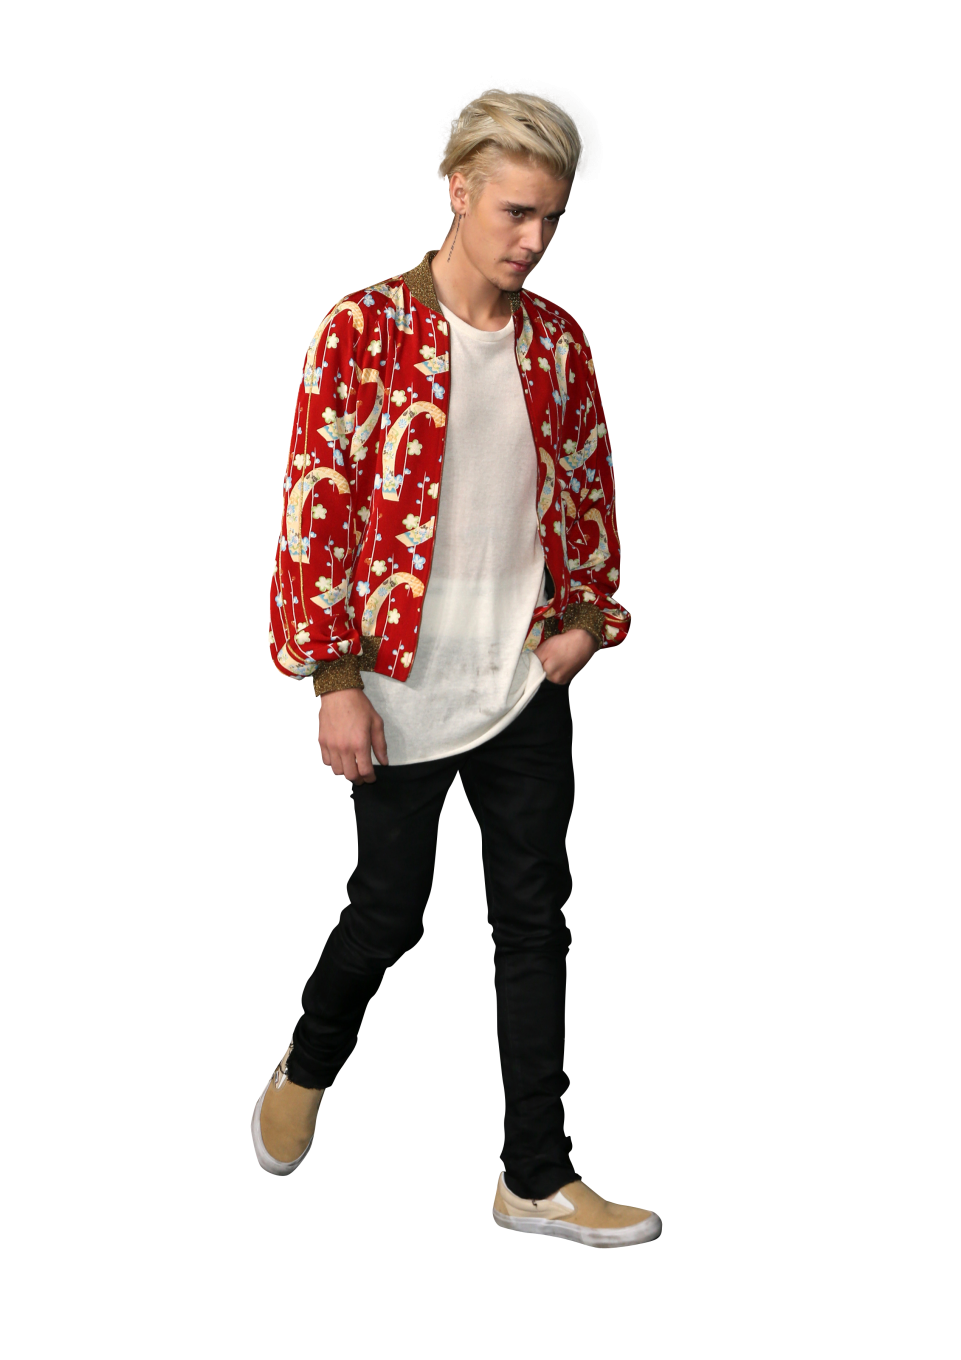 Justin Bieber dressed in a Red Shirt PNG Image